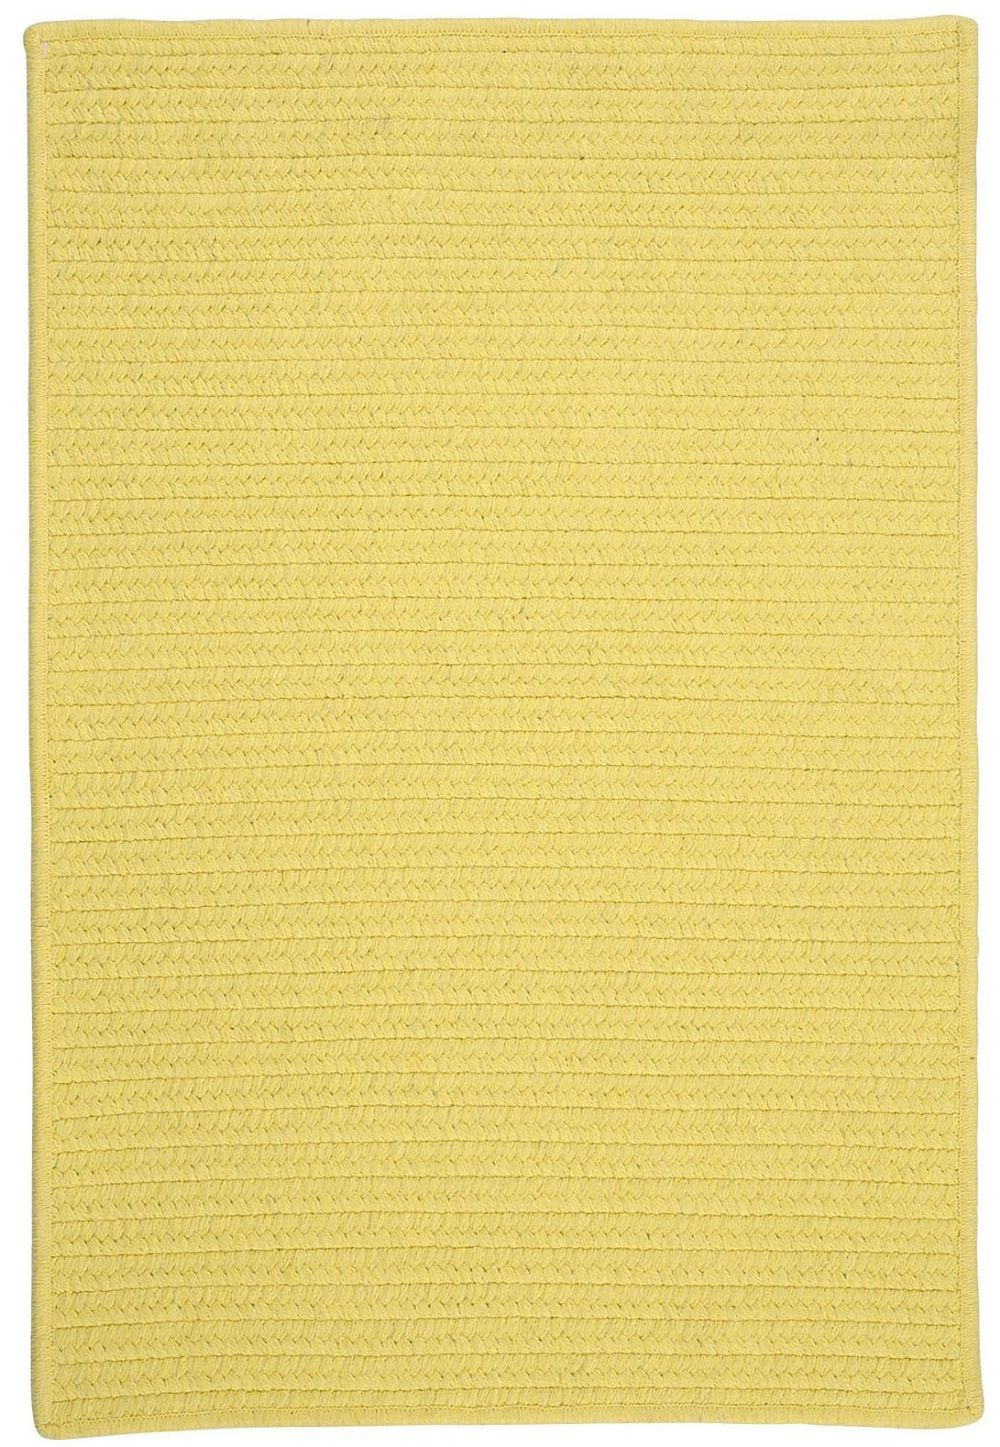 colonial mills courtyard braided area rug collection